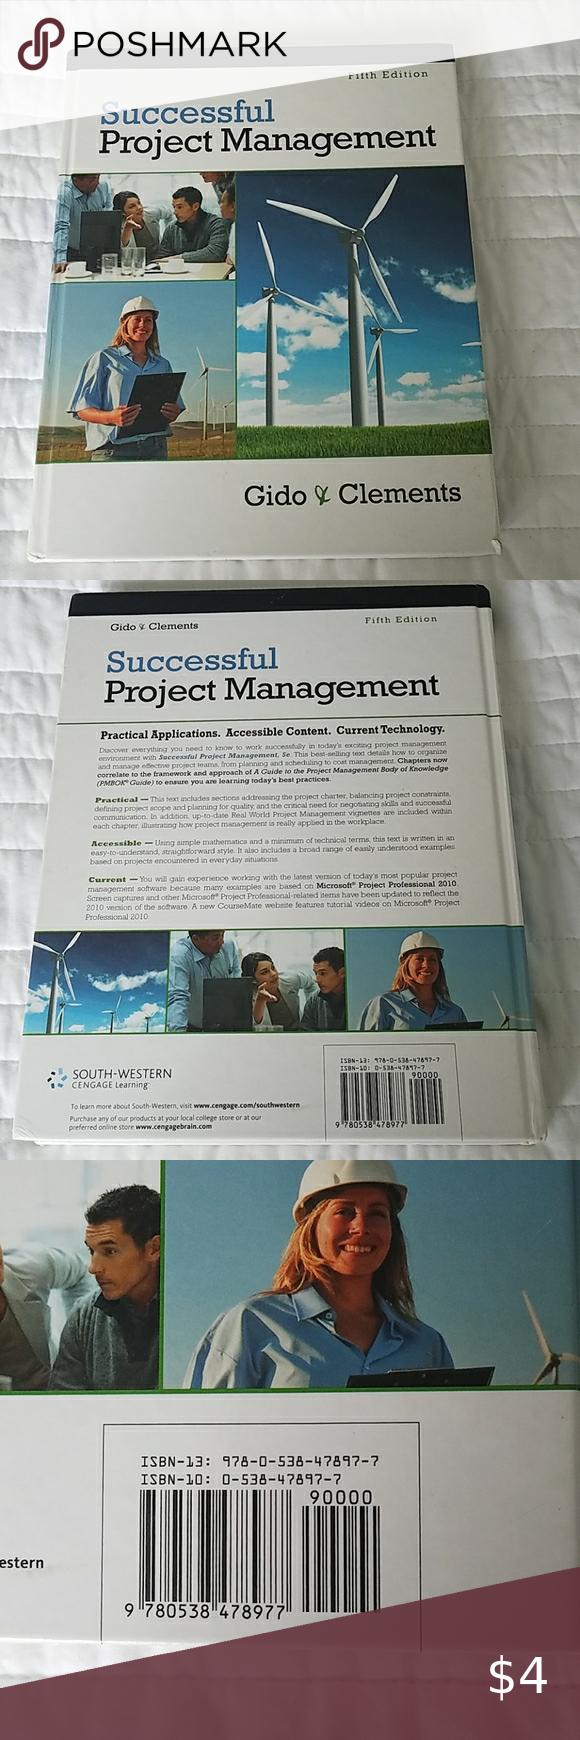 Successful Project Management Bundle With Other Items For A Great Offer For Example 2 Of The 4 Items I Can Make An O Project Management Management Success